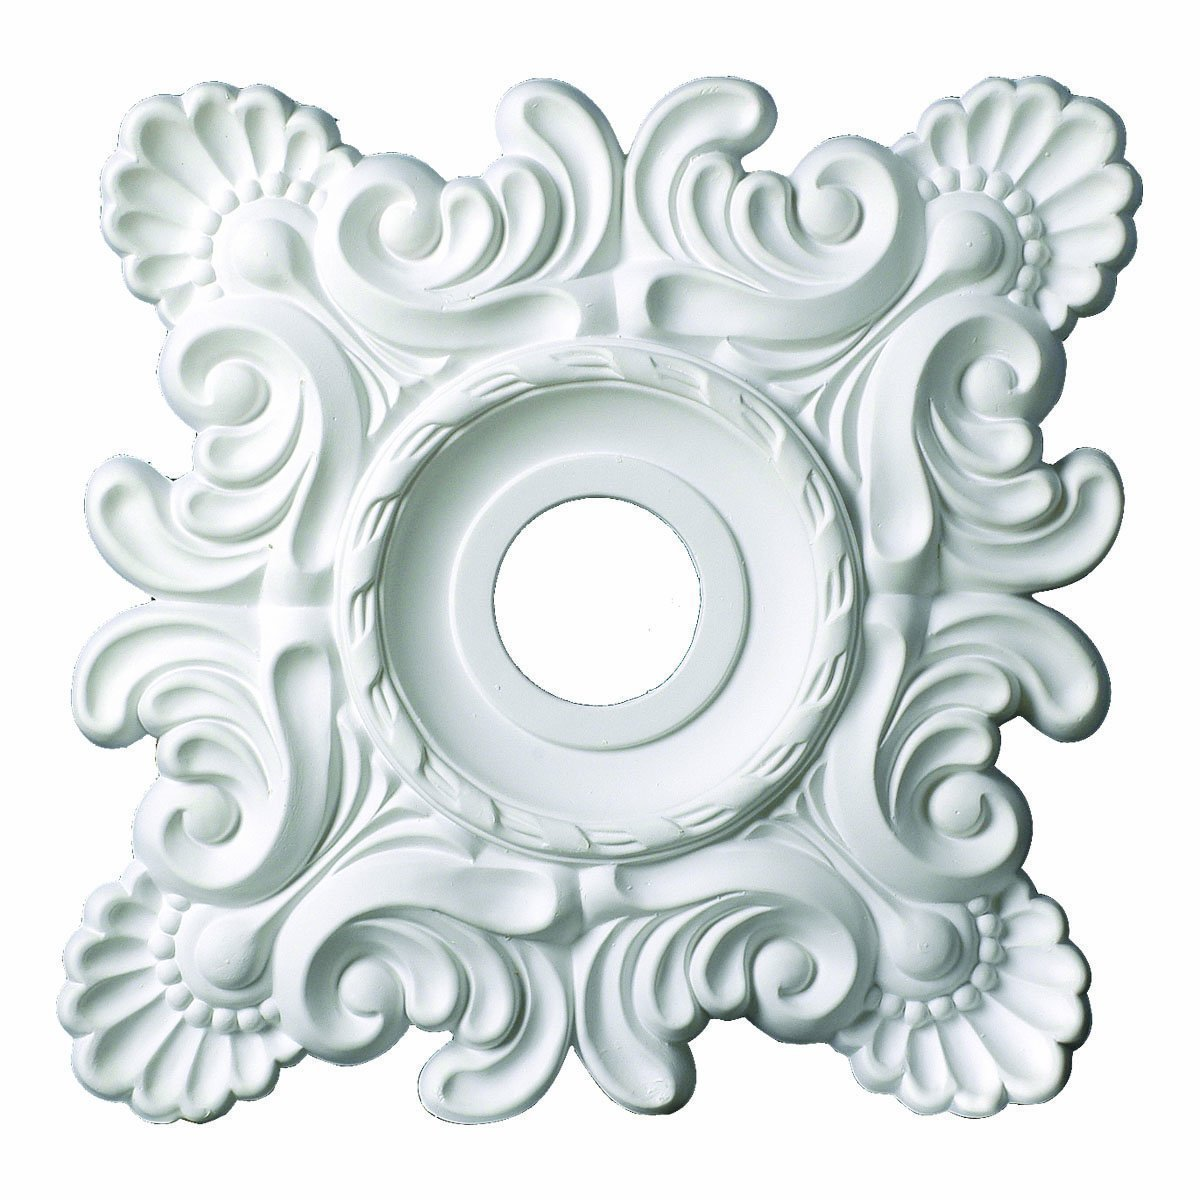 18 Inch Square Ceiling Medallion 3 5/8'' ID White Primed Polyurethane #537 By Designer's Edge Millwork by Designer's Edge Millwork